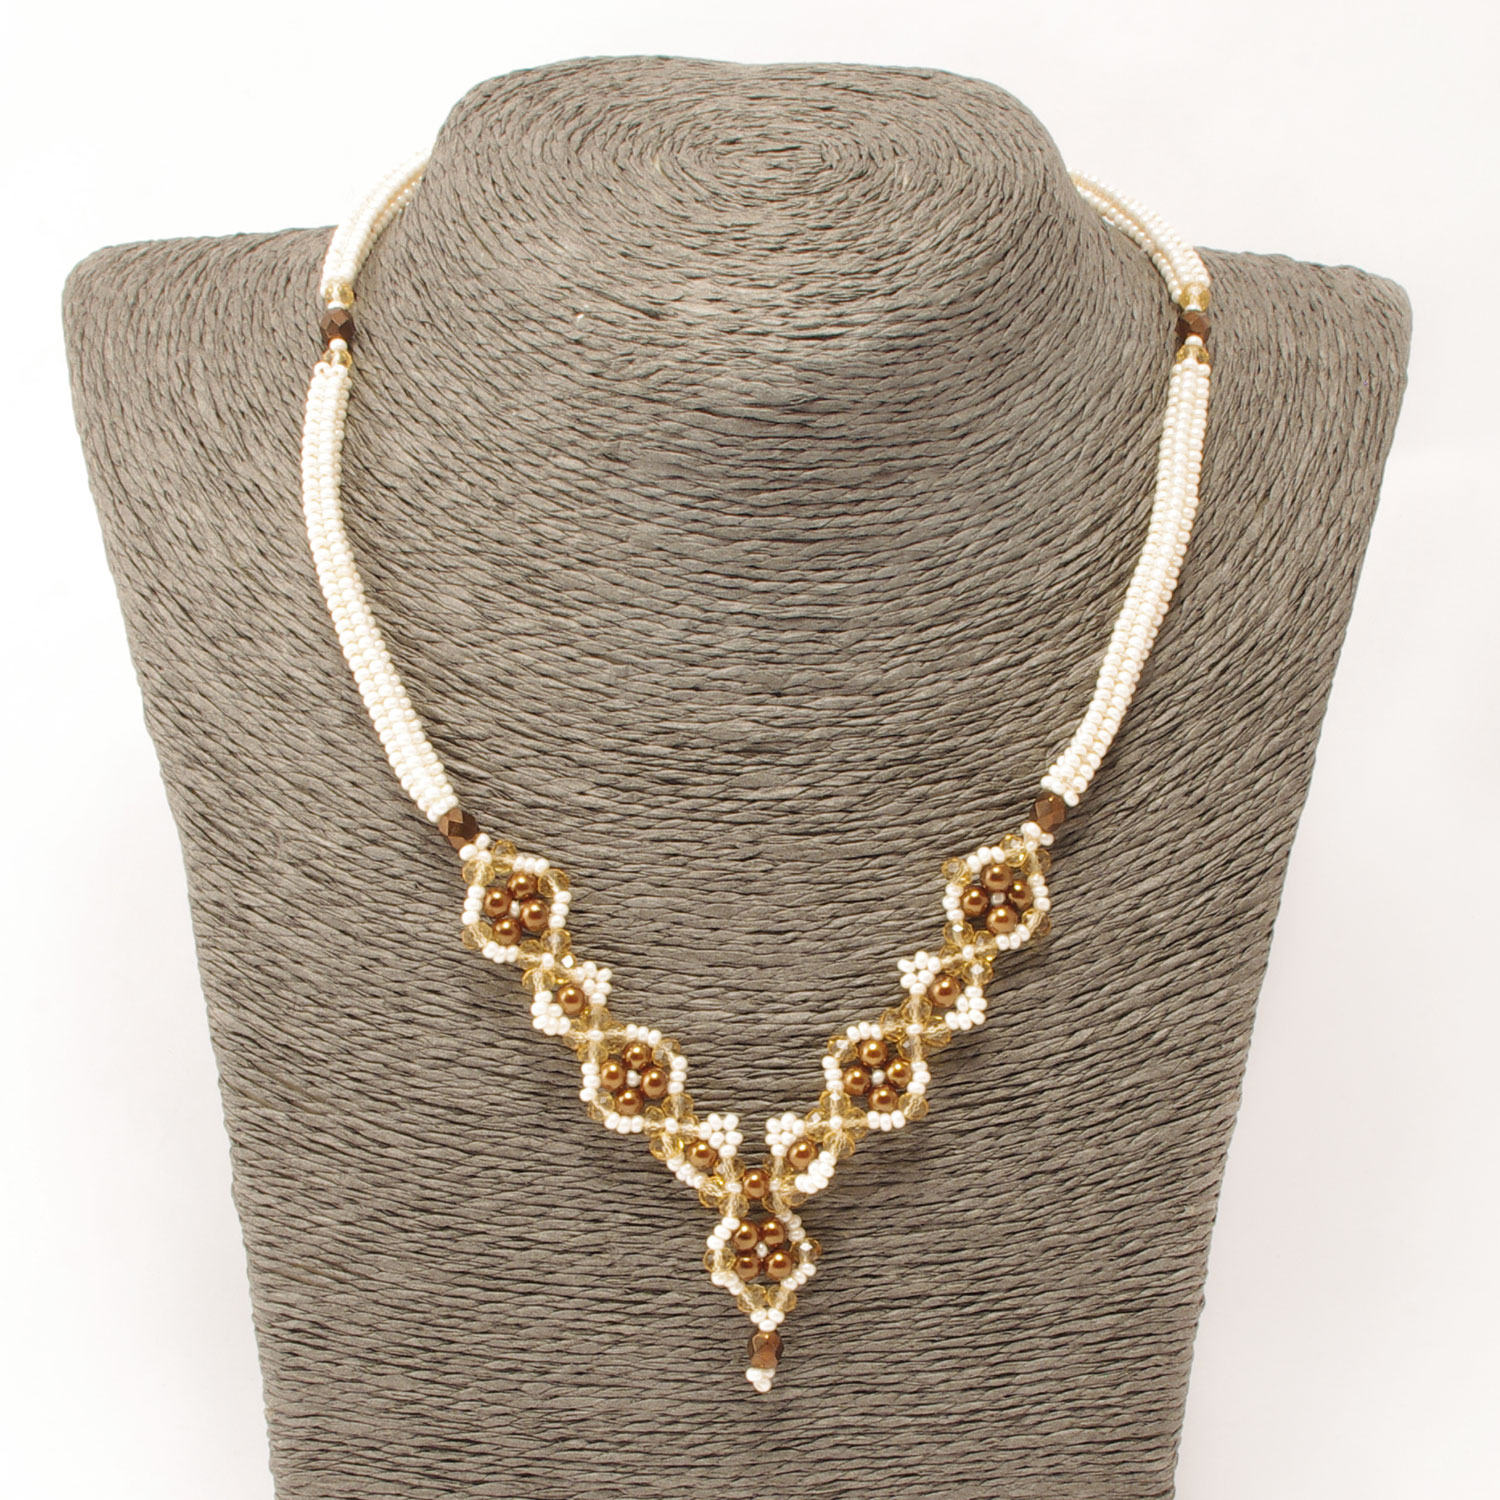 Reina Necklace in beige